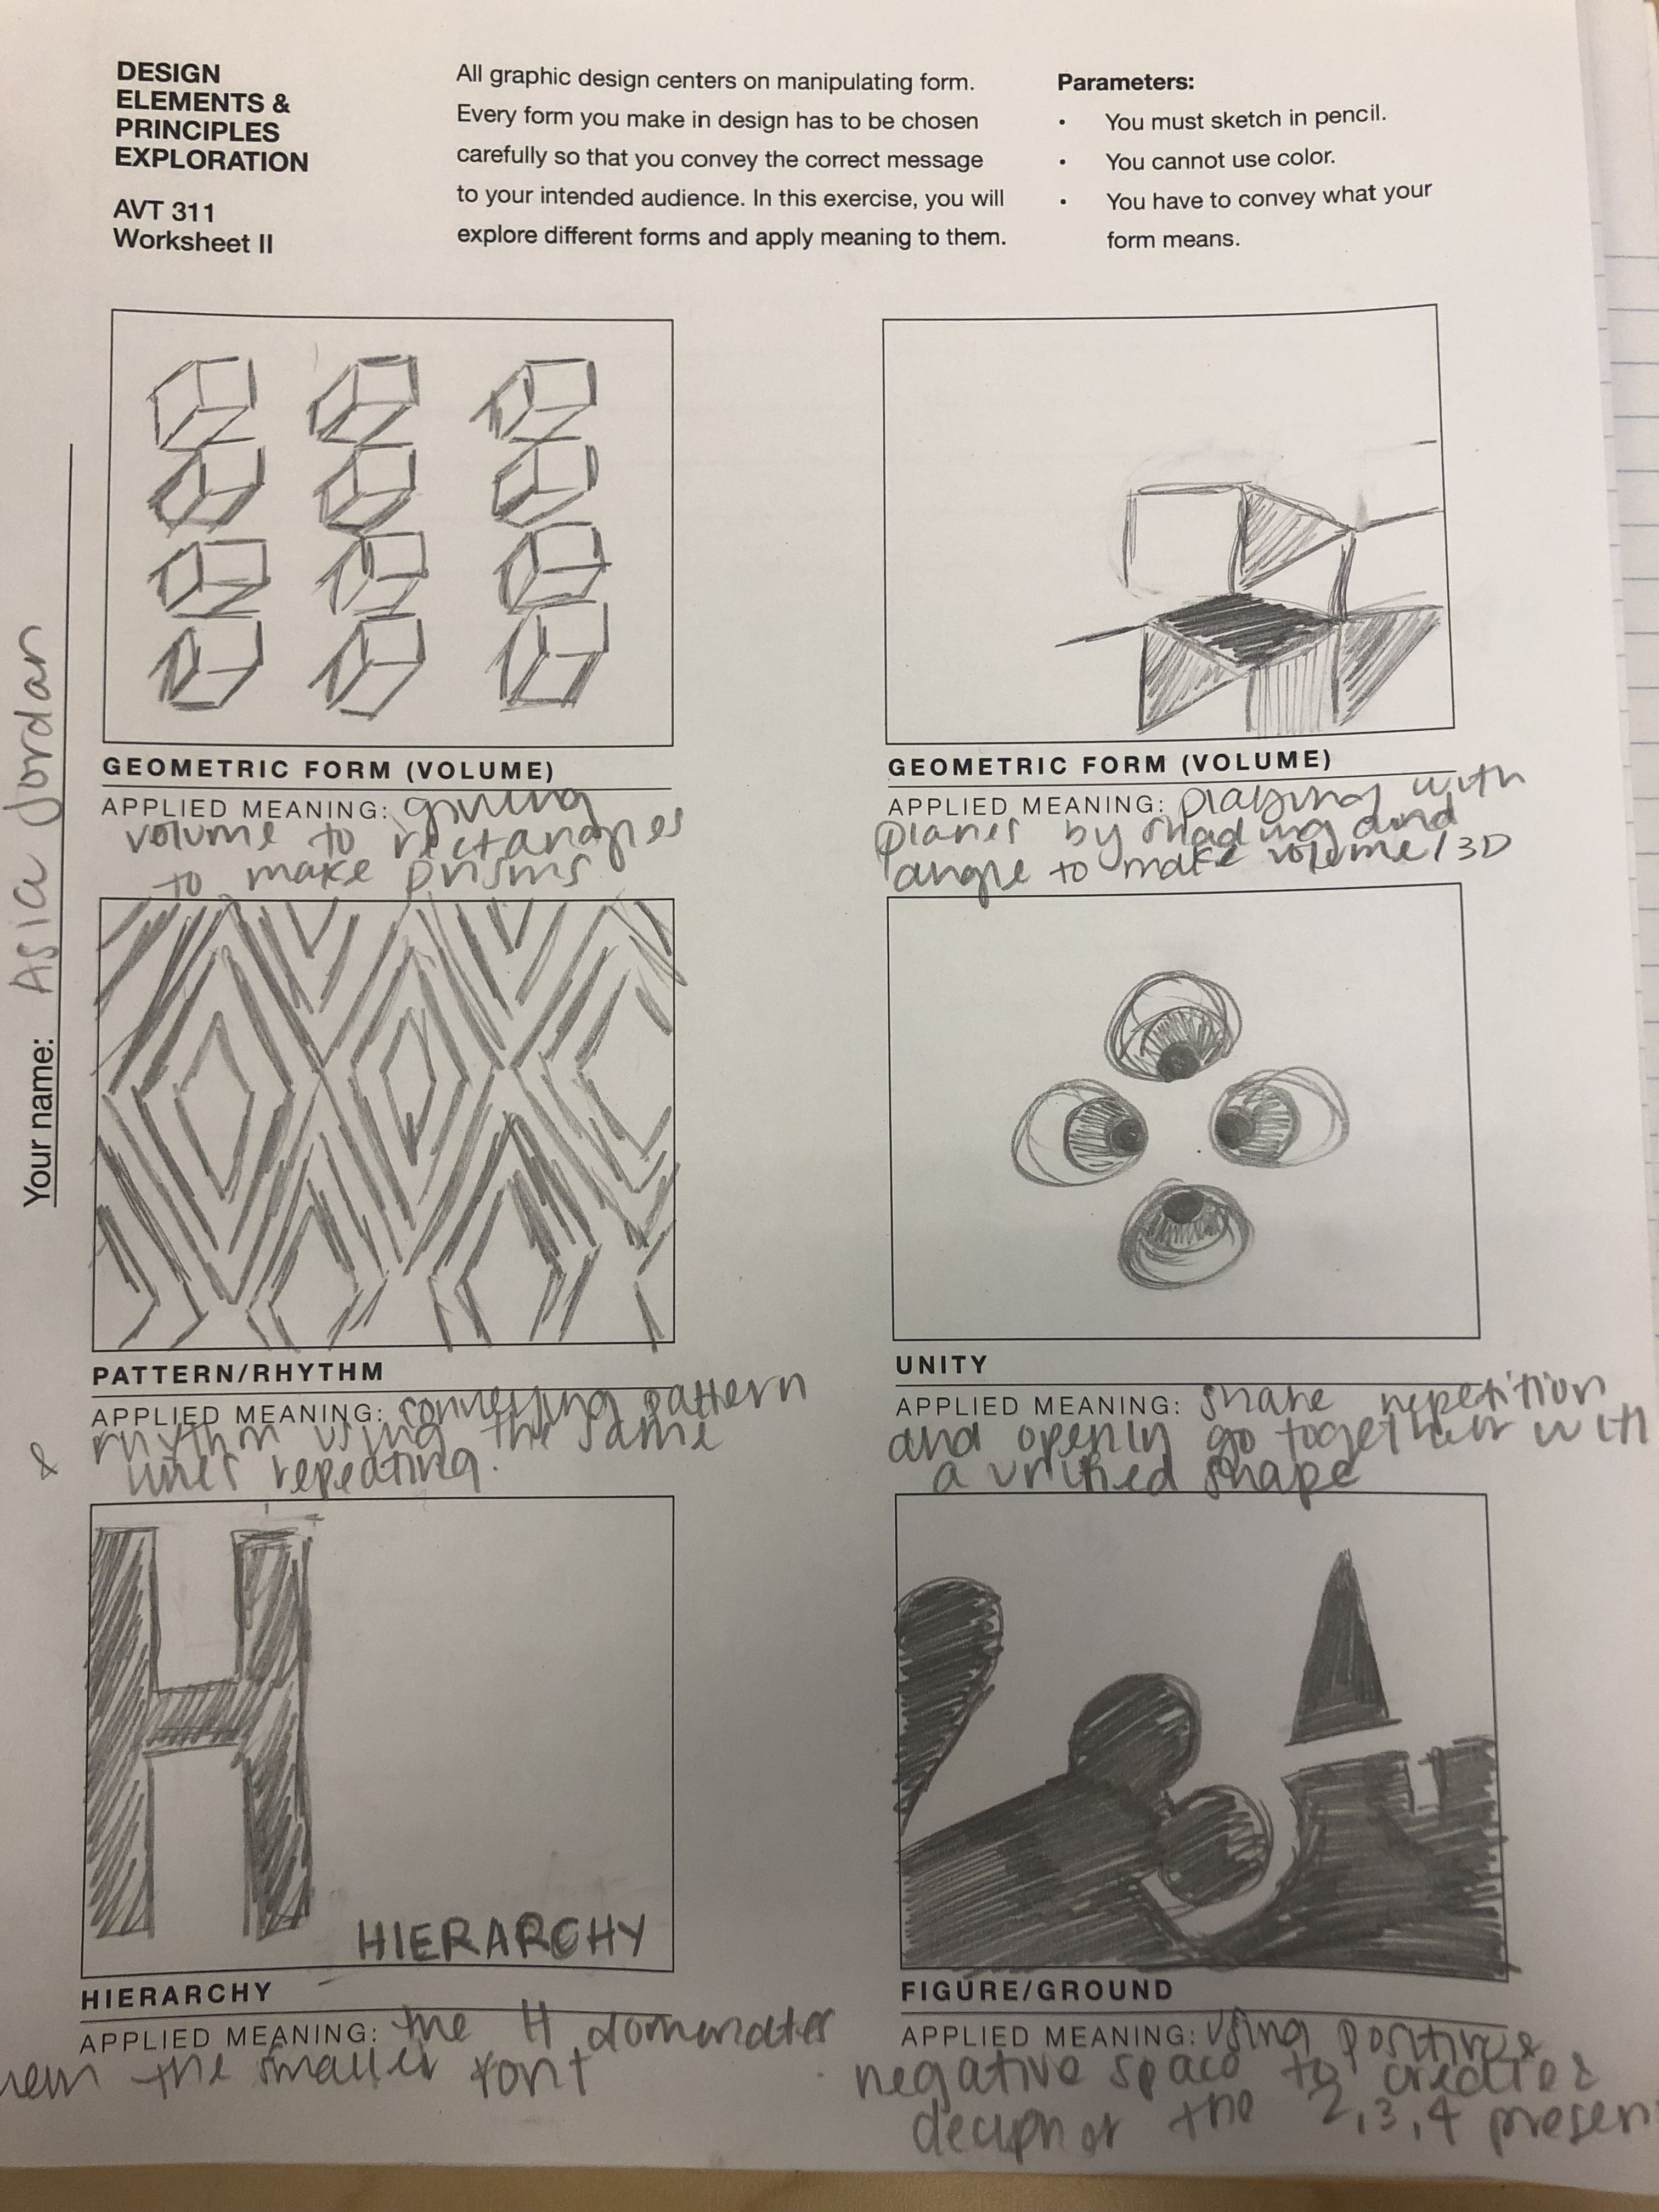 Idea By Asia Jordan On Assigments 2 And 3 Avt 311